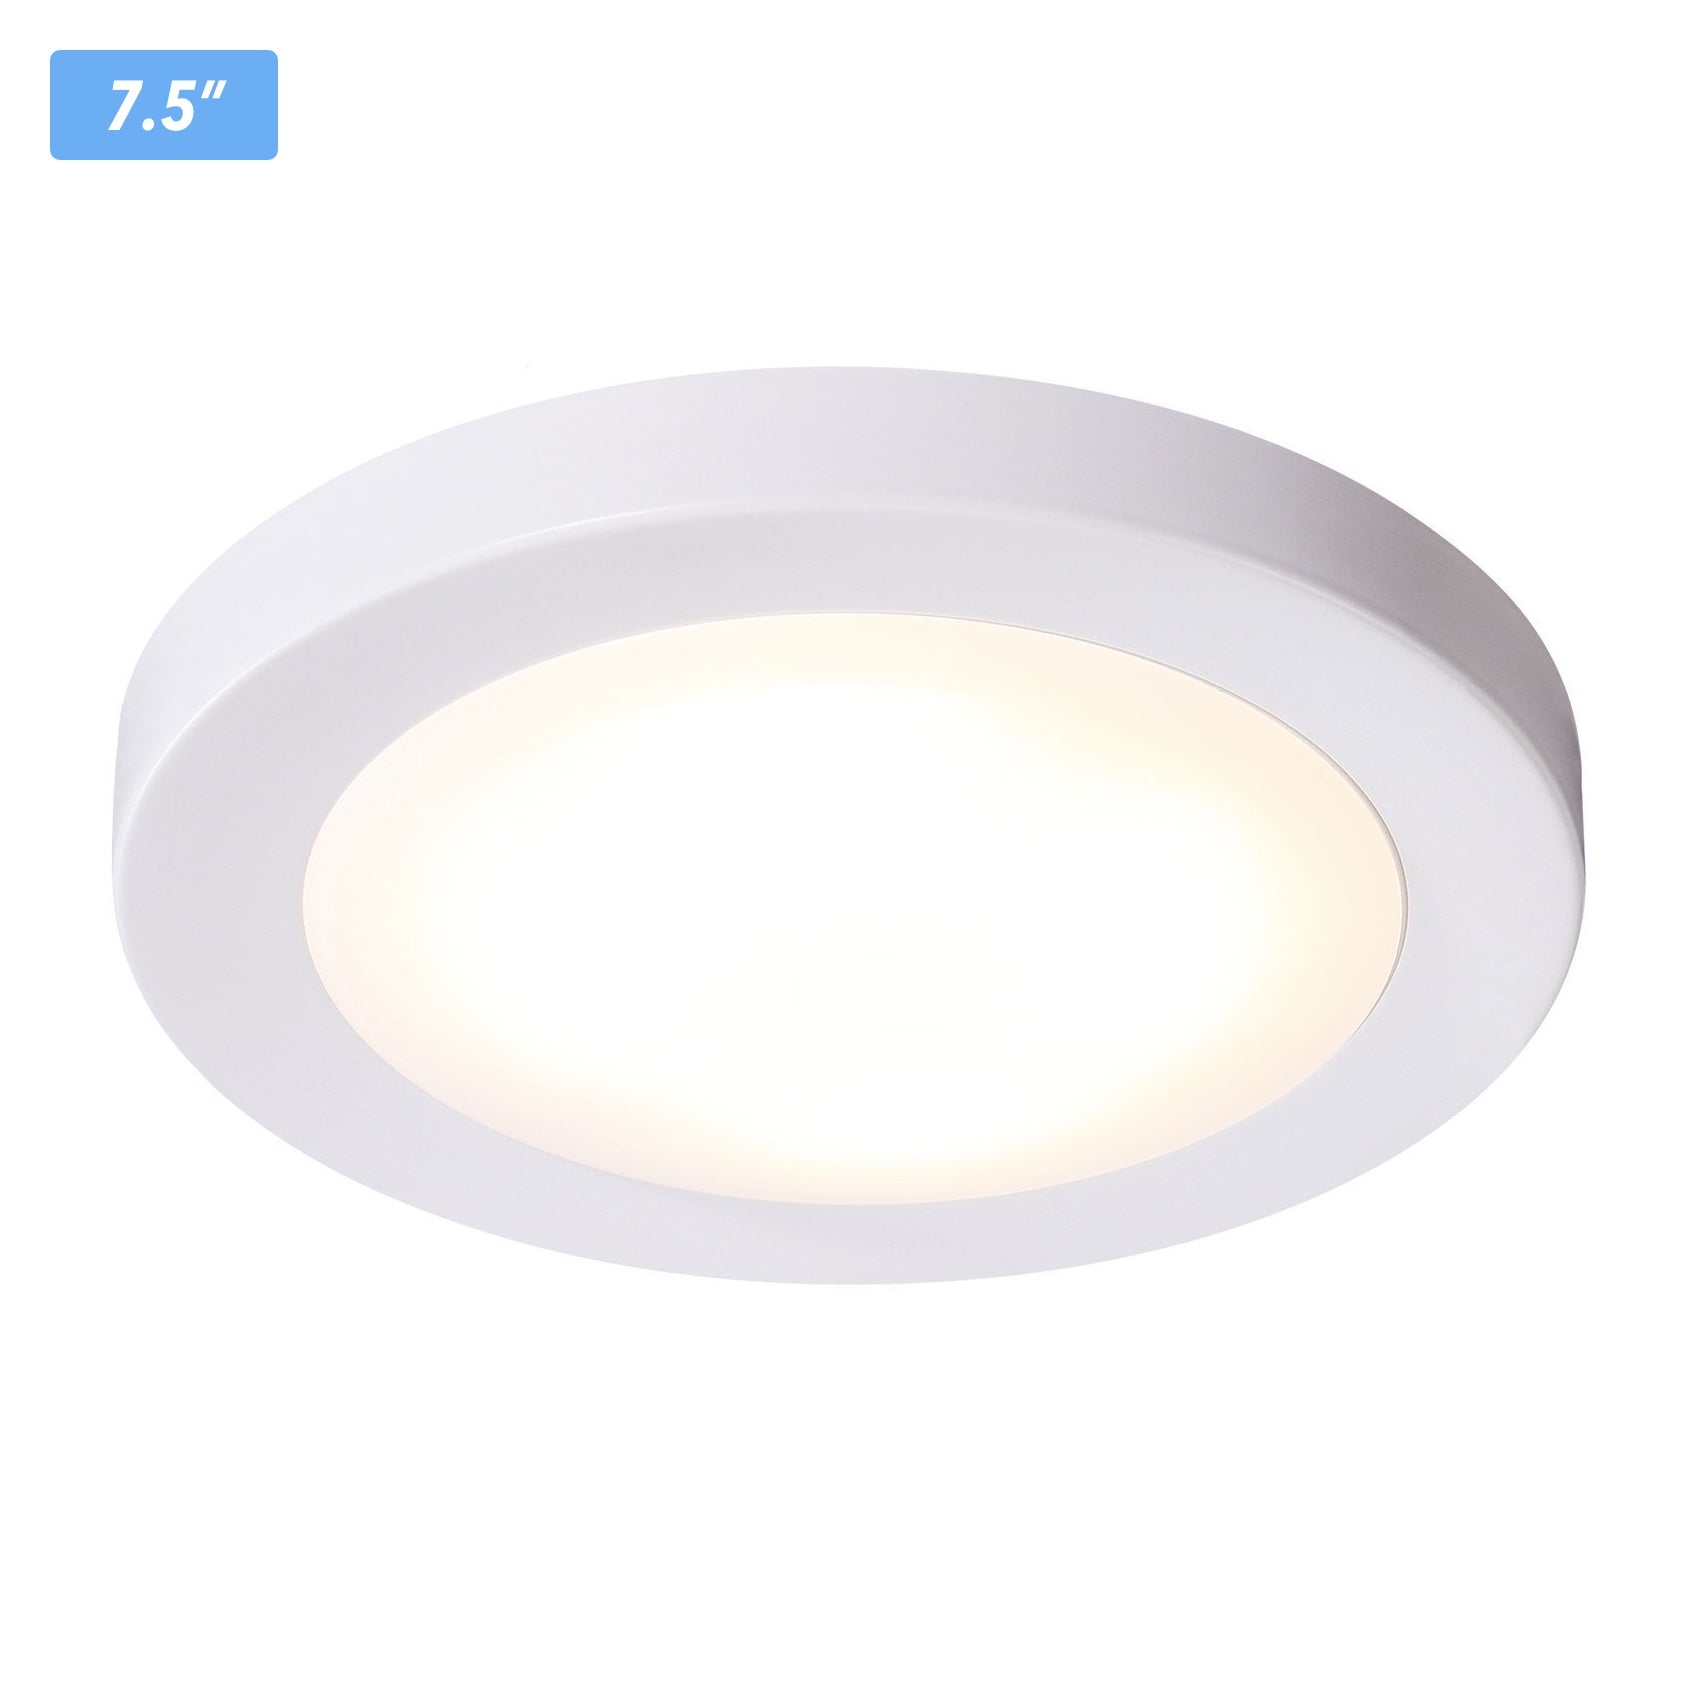 Cloudybay LED Flush Mount Ceiling Light 7-inch 12W White__title